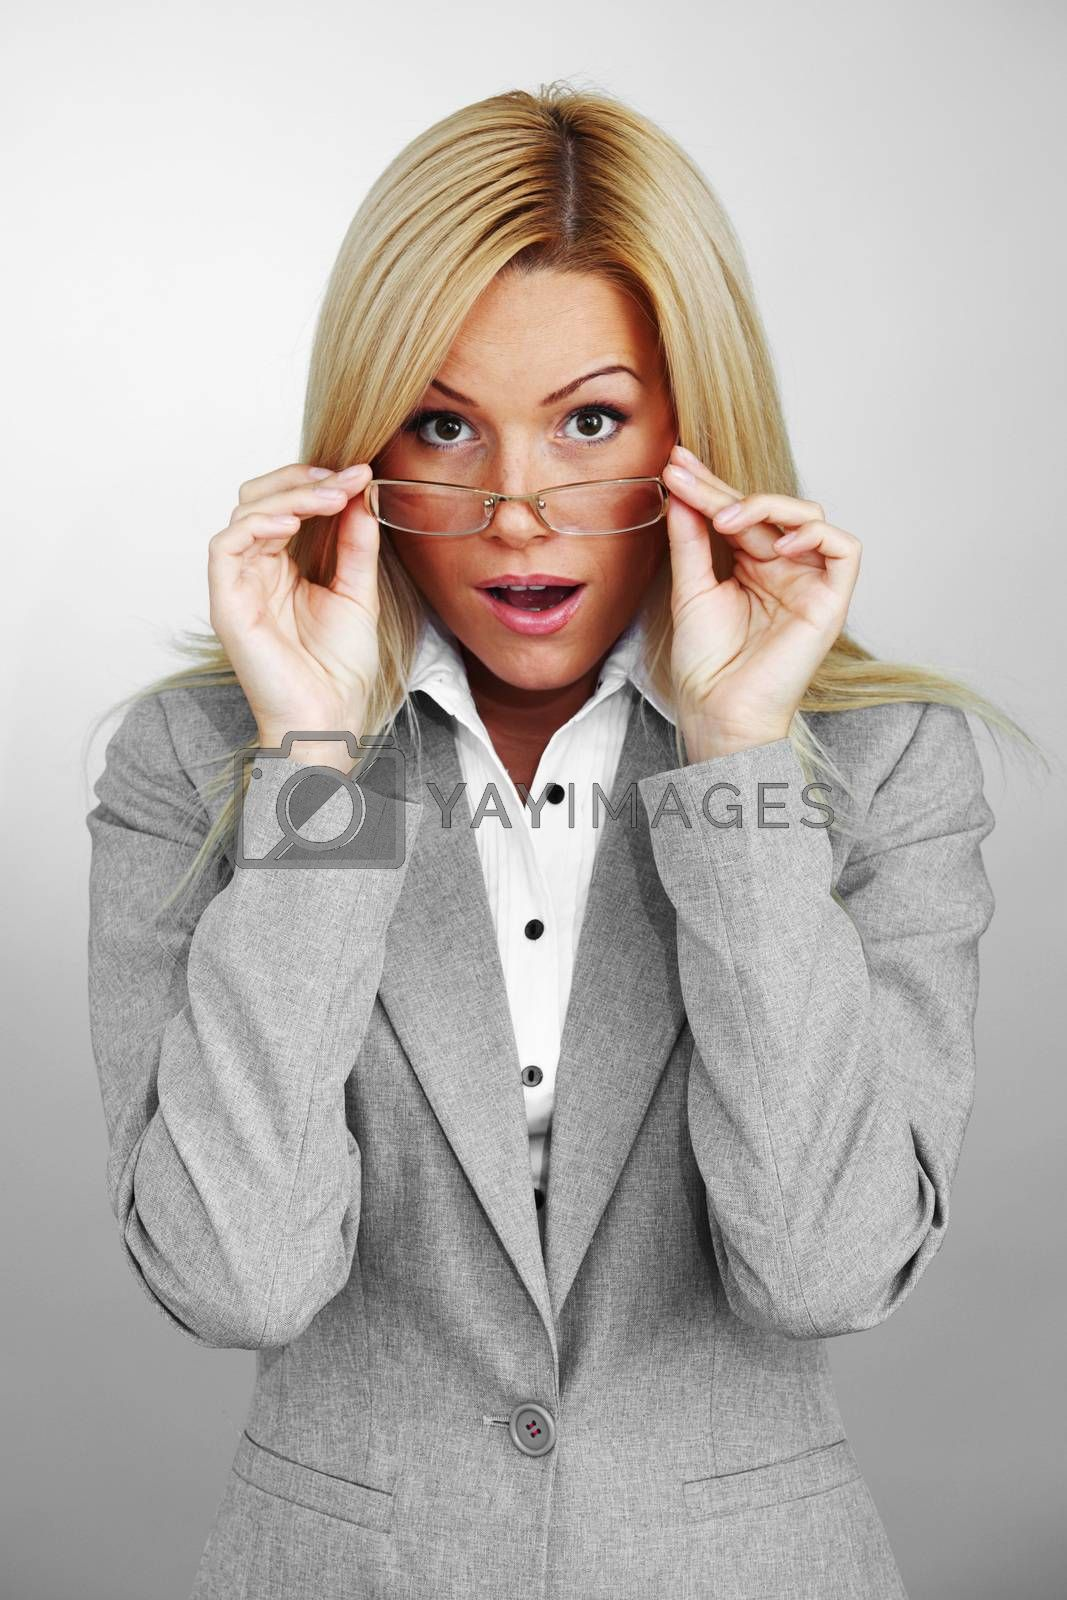 Shocked young business woman wearing gray suit and glasses on grey background